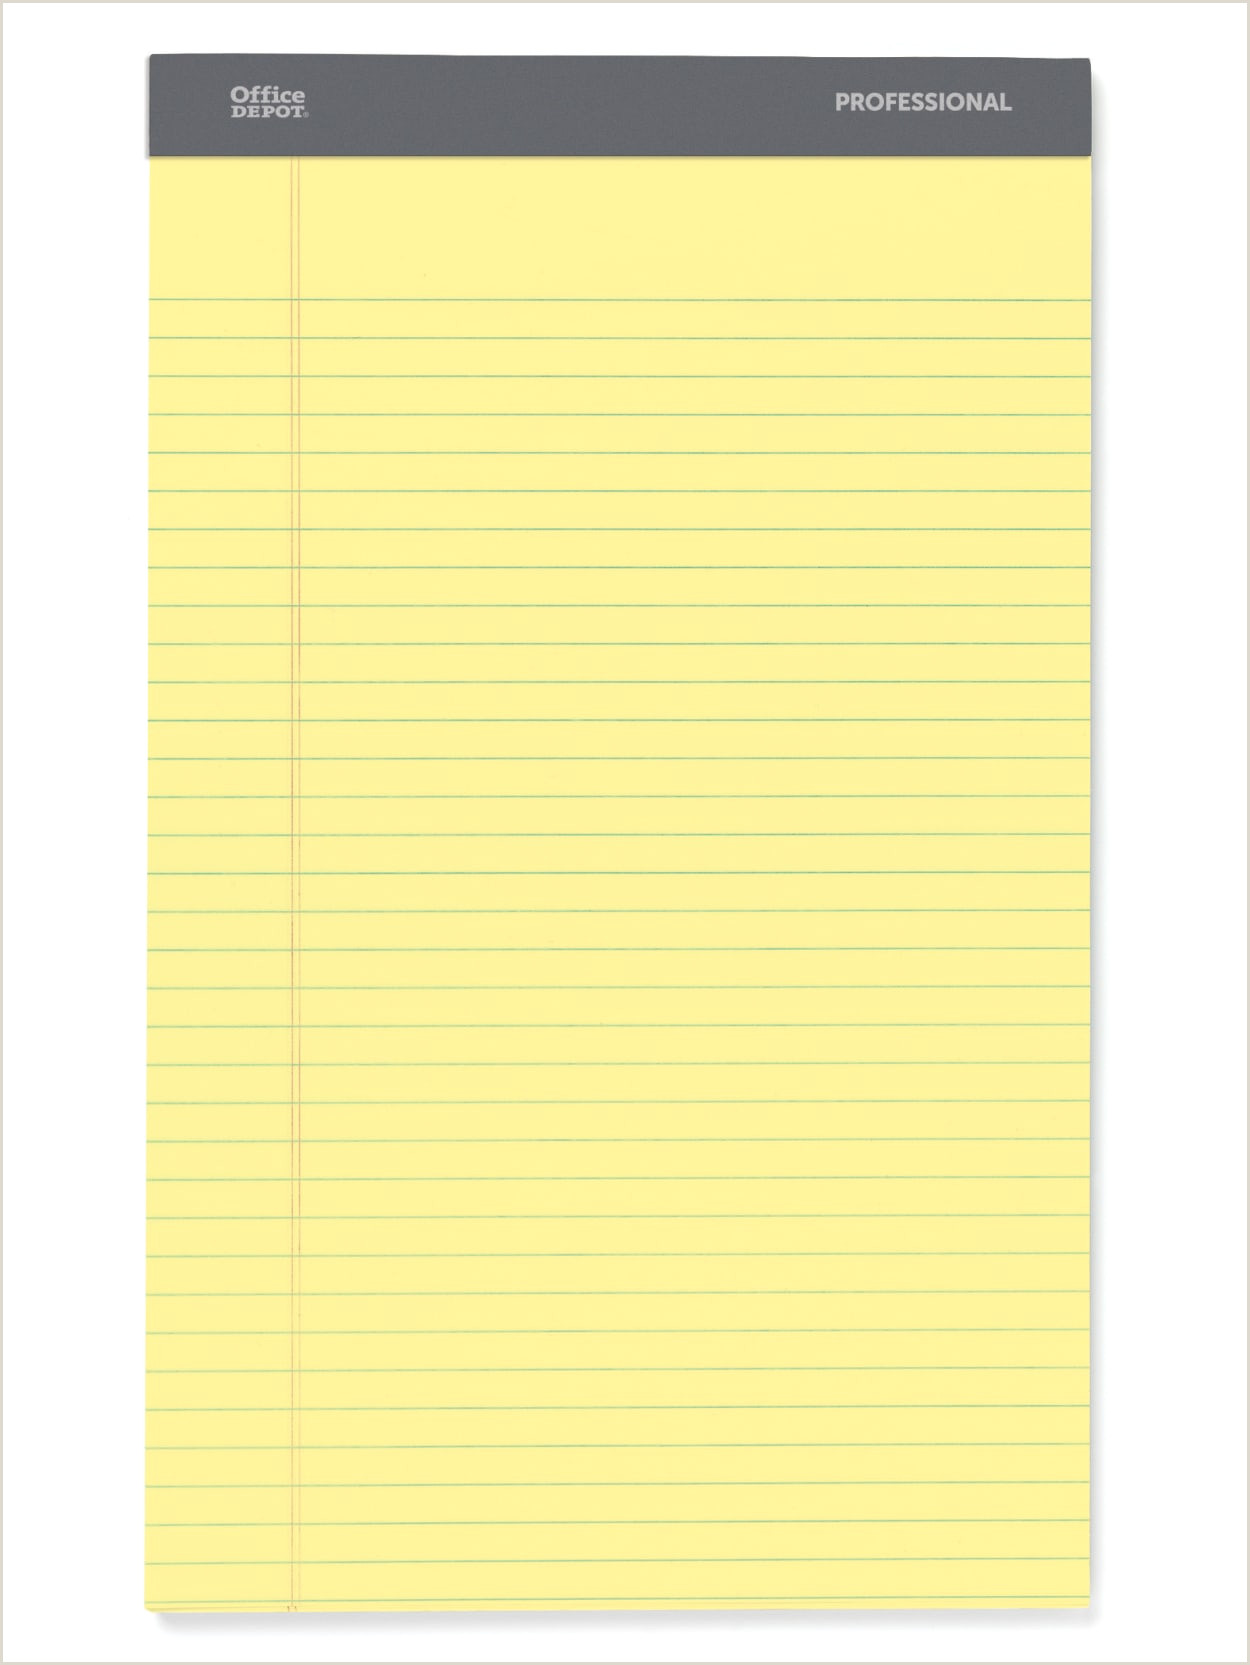 """Office Max Banner Prices Fice Depot Brand Professional Legal Pad 8 1 2"""" X 14"""" Canary Legal Ruled 50 Sheets 4 Pads Pack Item"""